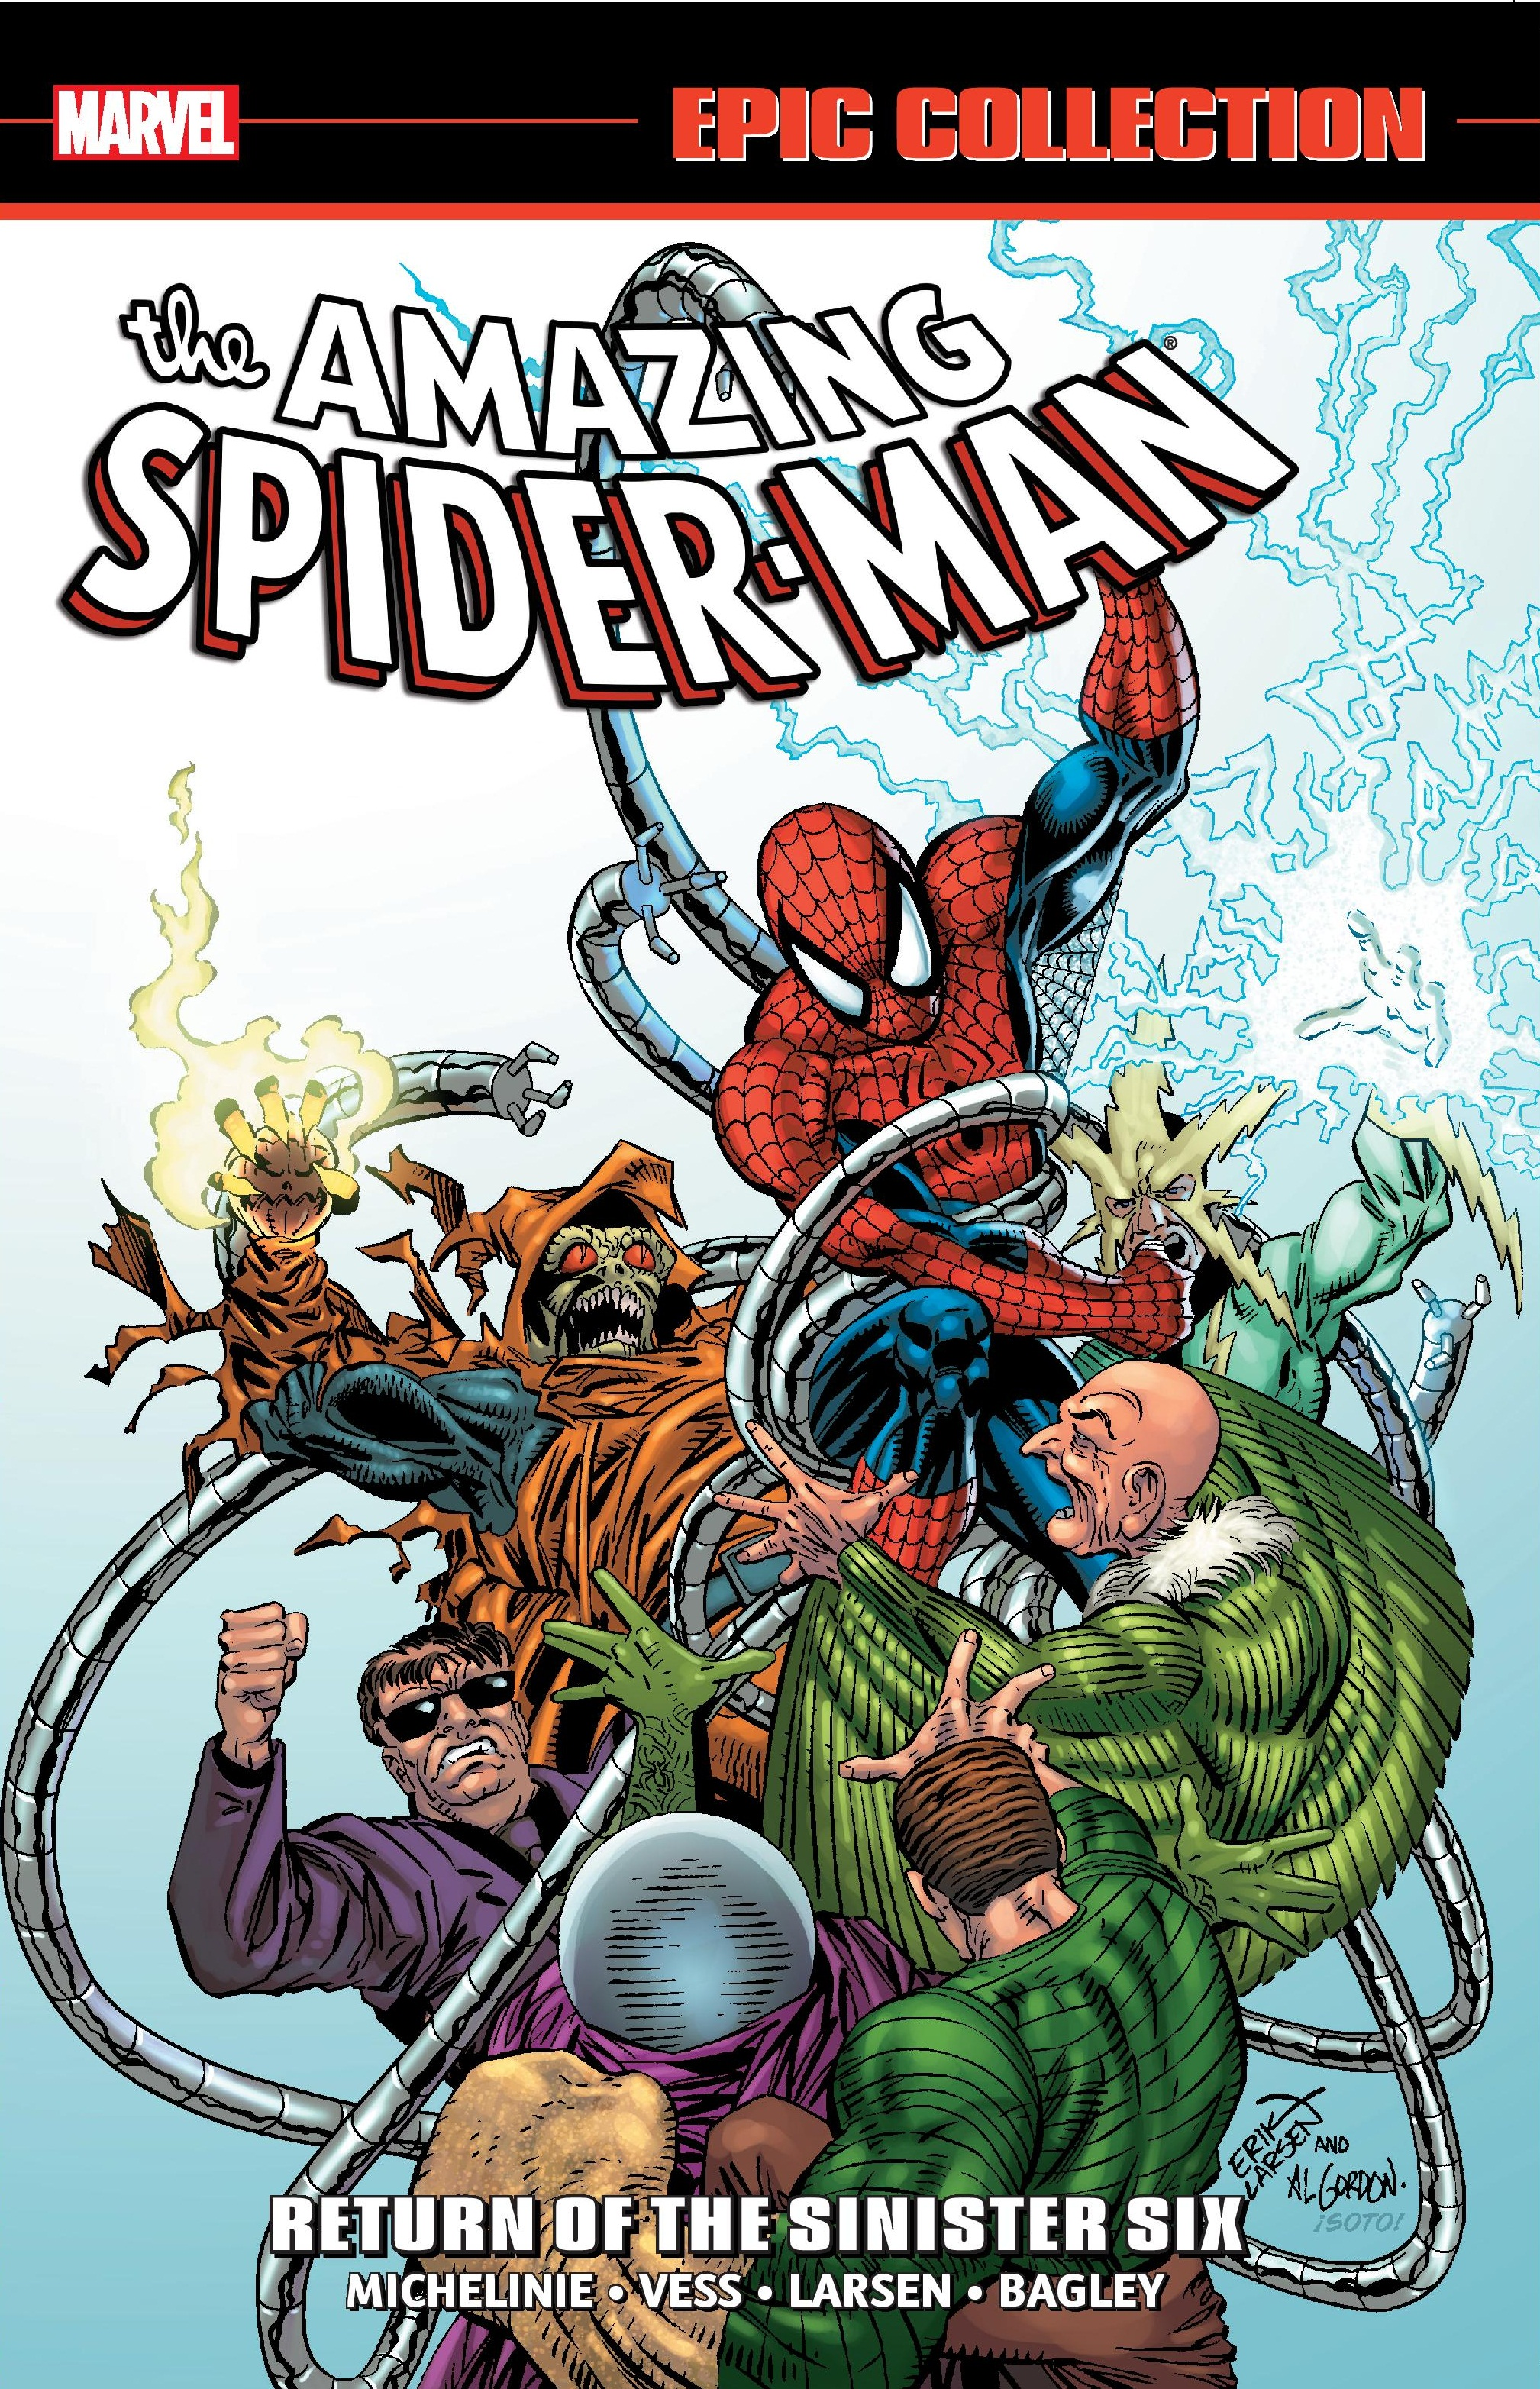 AMAZING SPIDER-MAN EPIC COLLECTION: RETURN OF THE SINISTER SIX TPB (Trade Paperback)